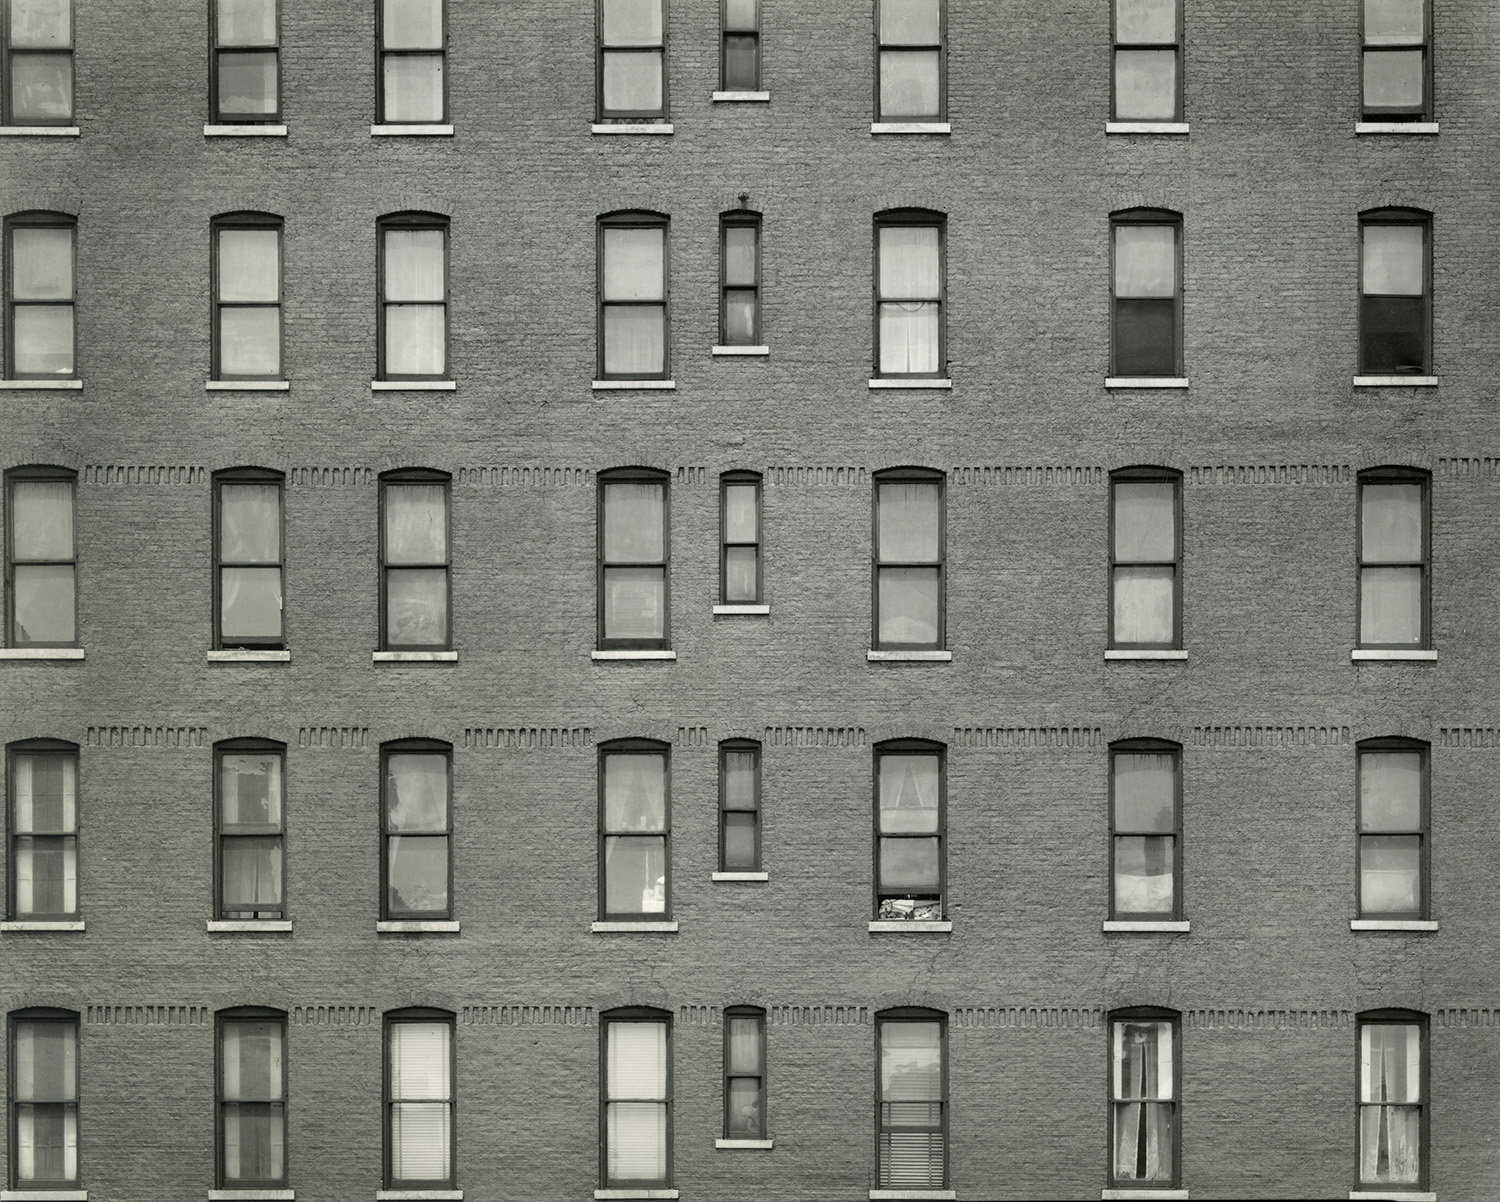 Chicago by Harry Callahan c.1949  - © The Estate of Harry Callahan